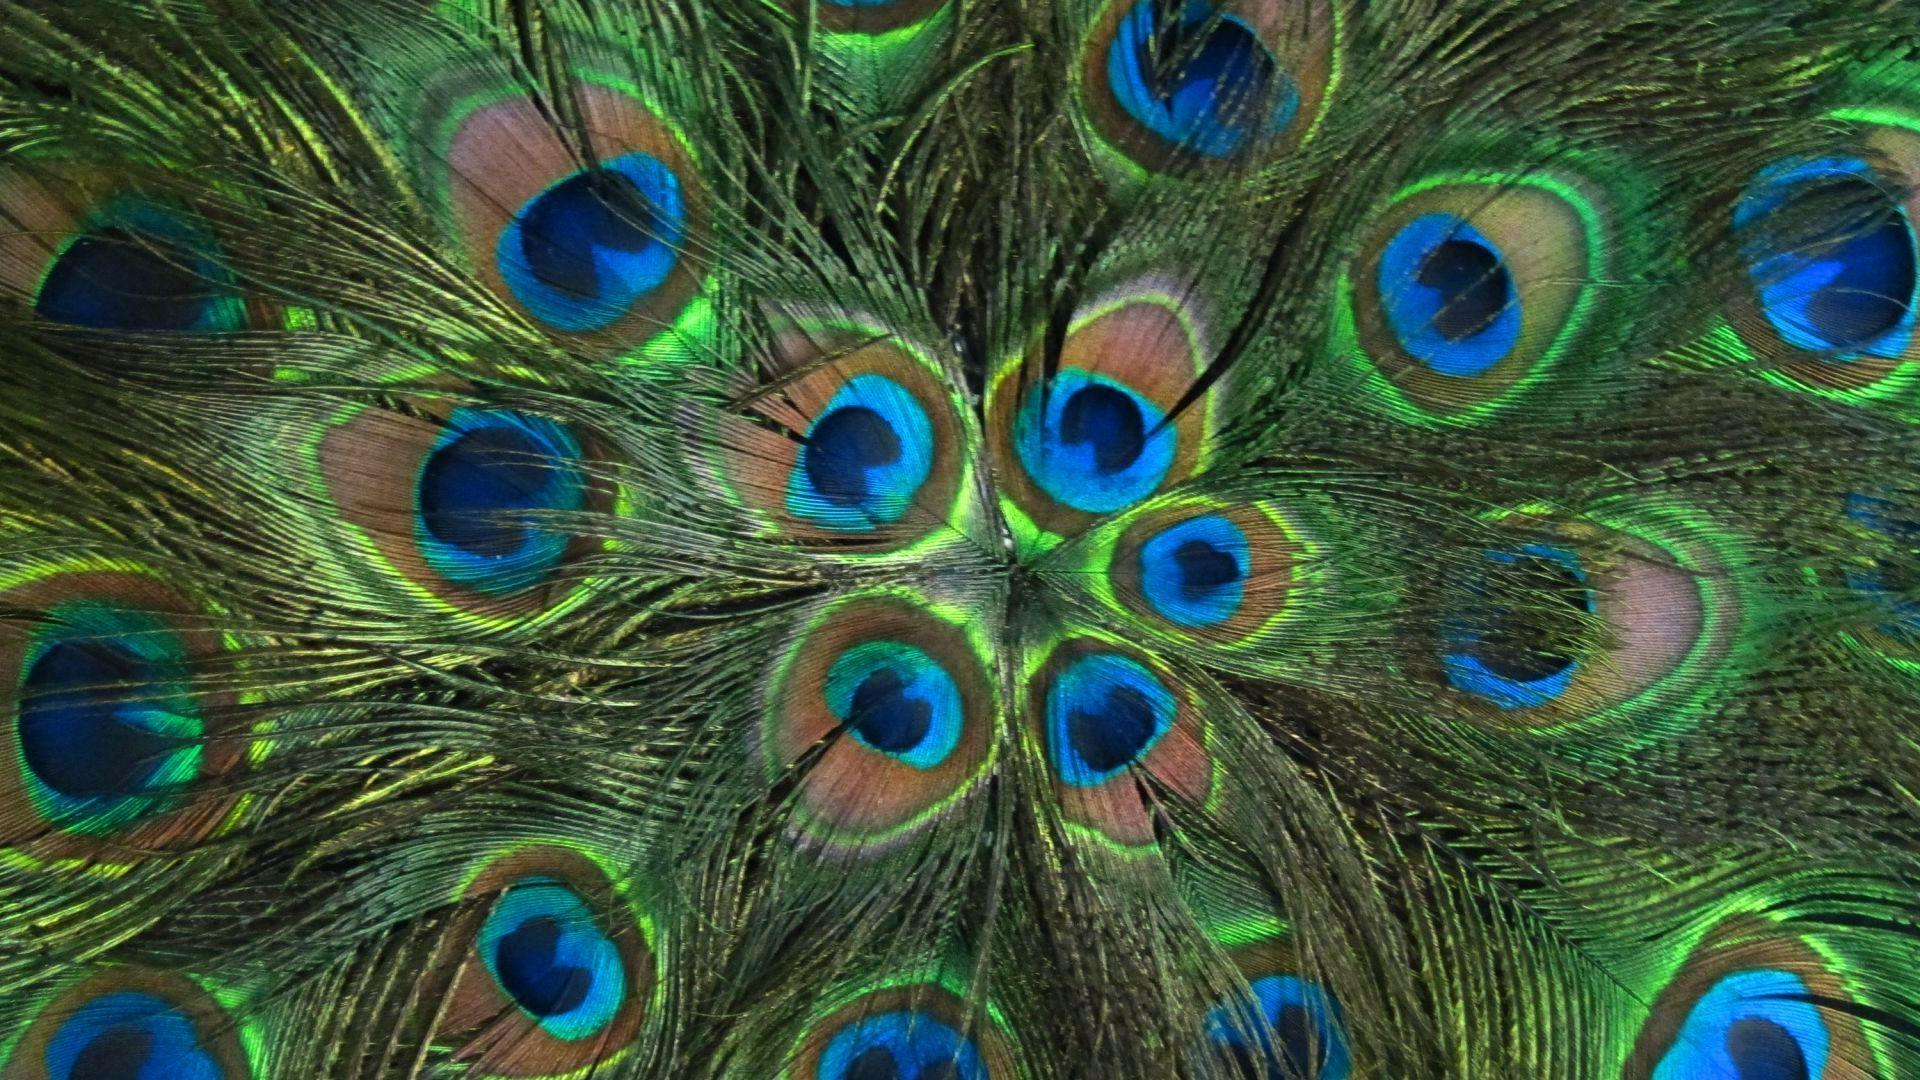 Mor Pankh Hd Wallpaper: Wallpapers Of Peacock Feathers HD 2016